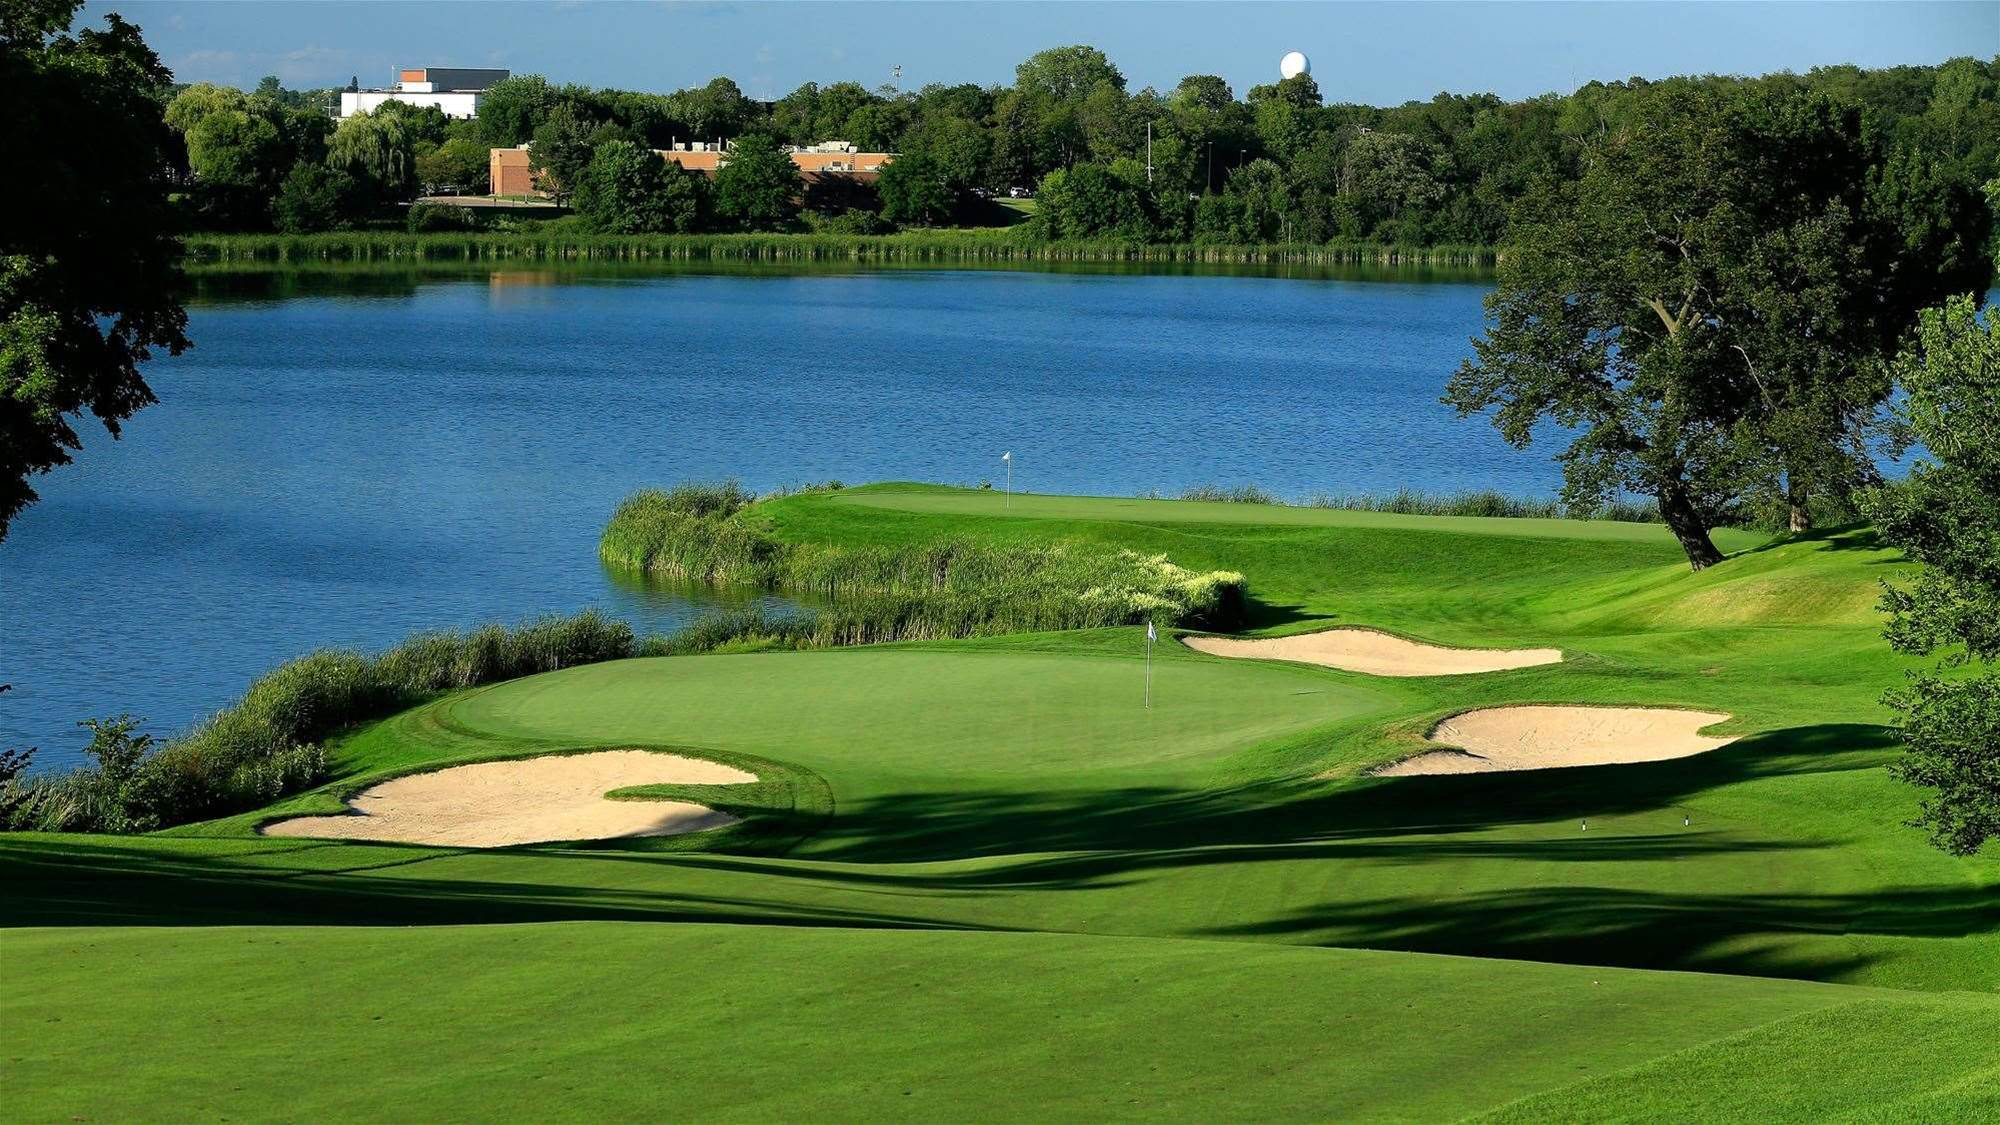 RYDER CUP: Hazeltine is the home of high drama